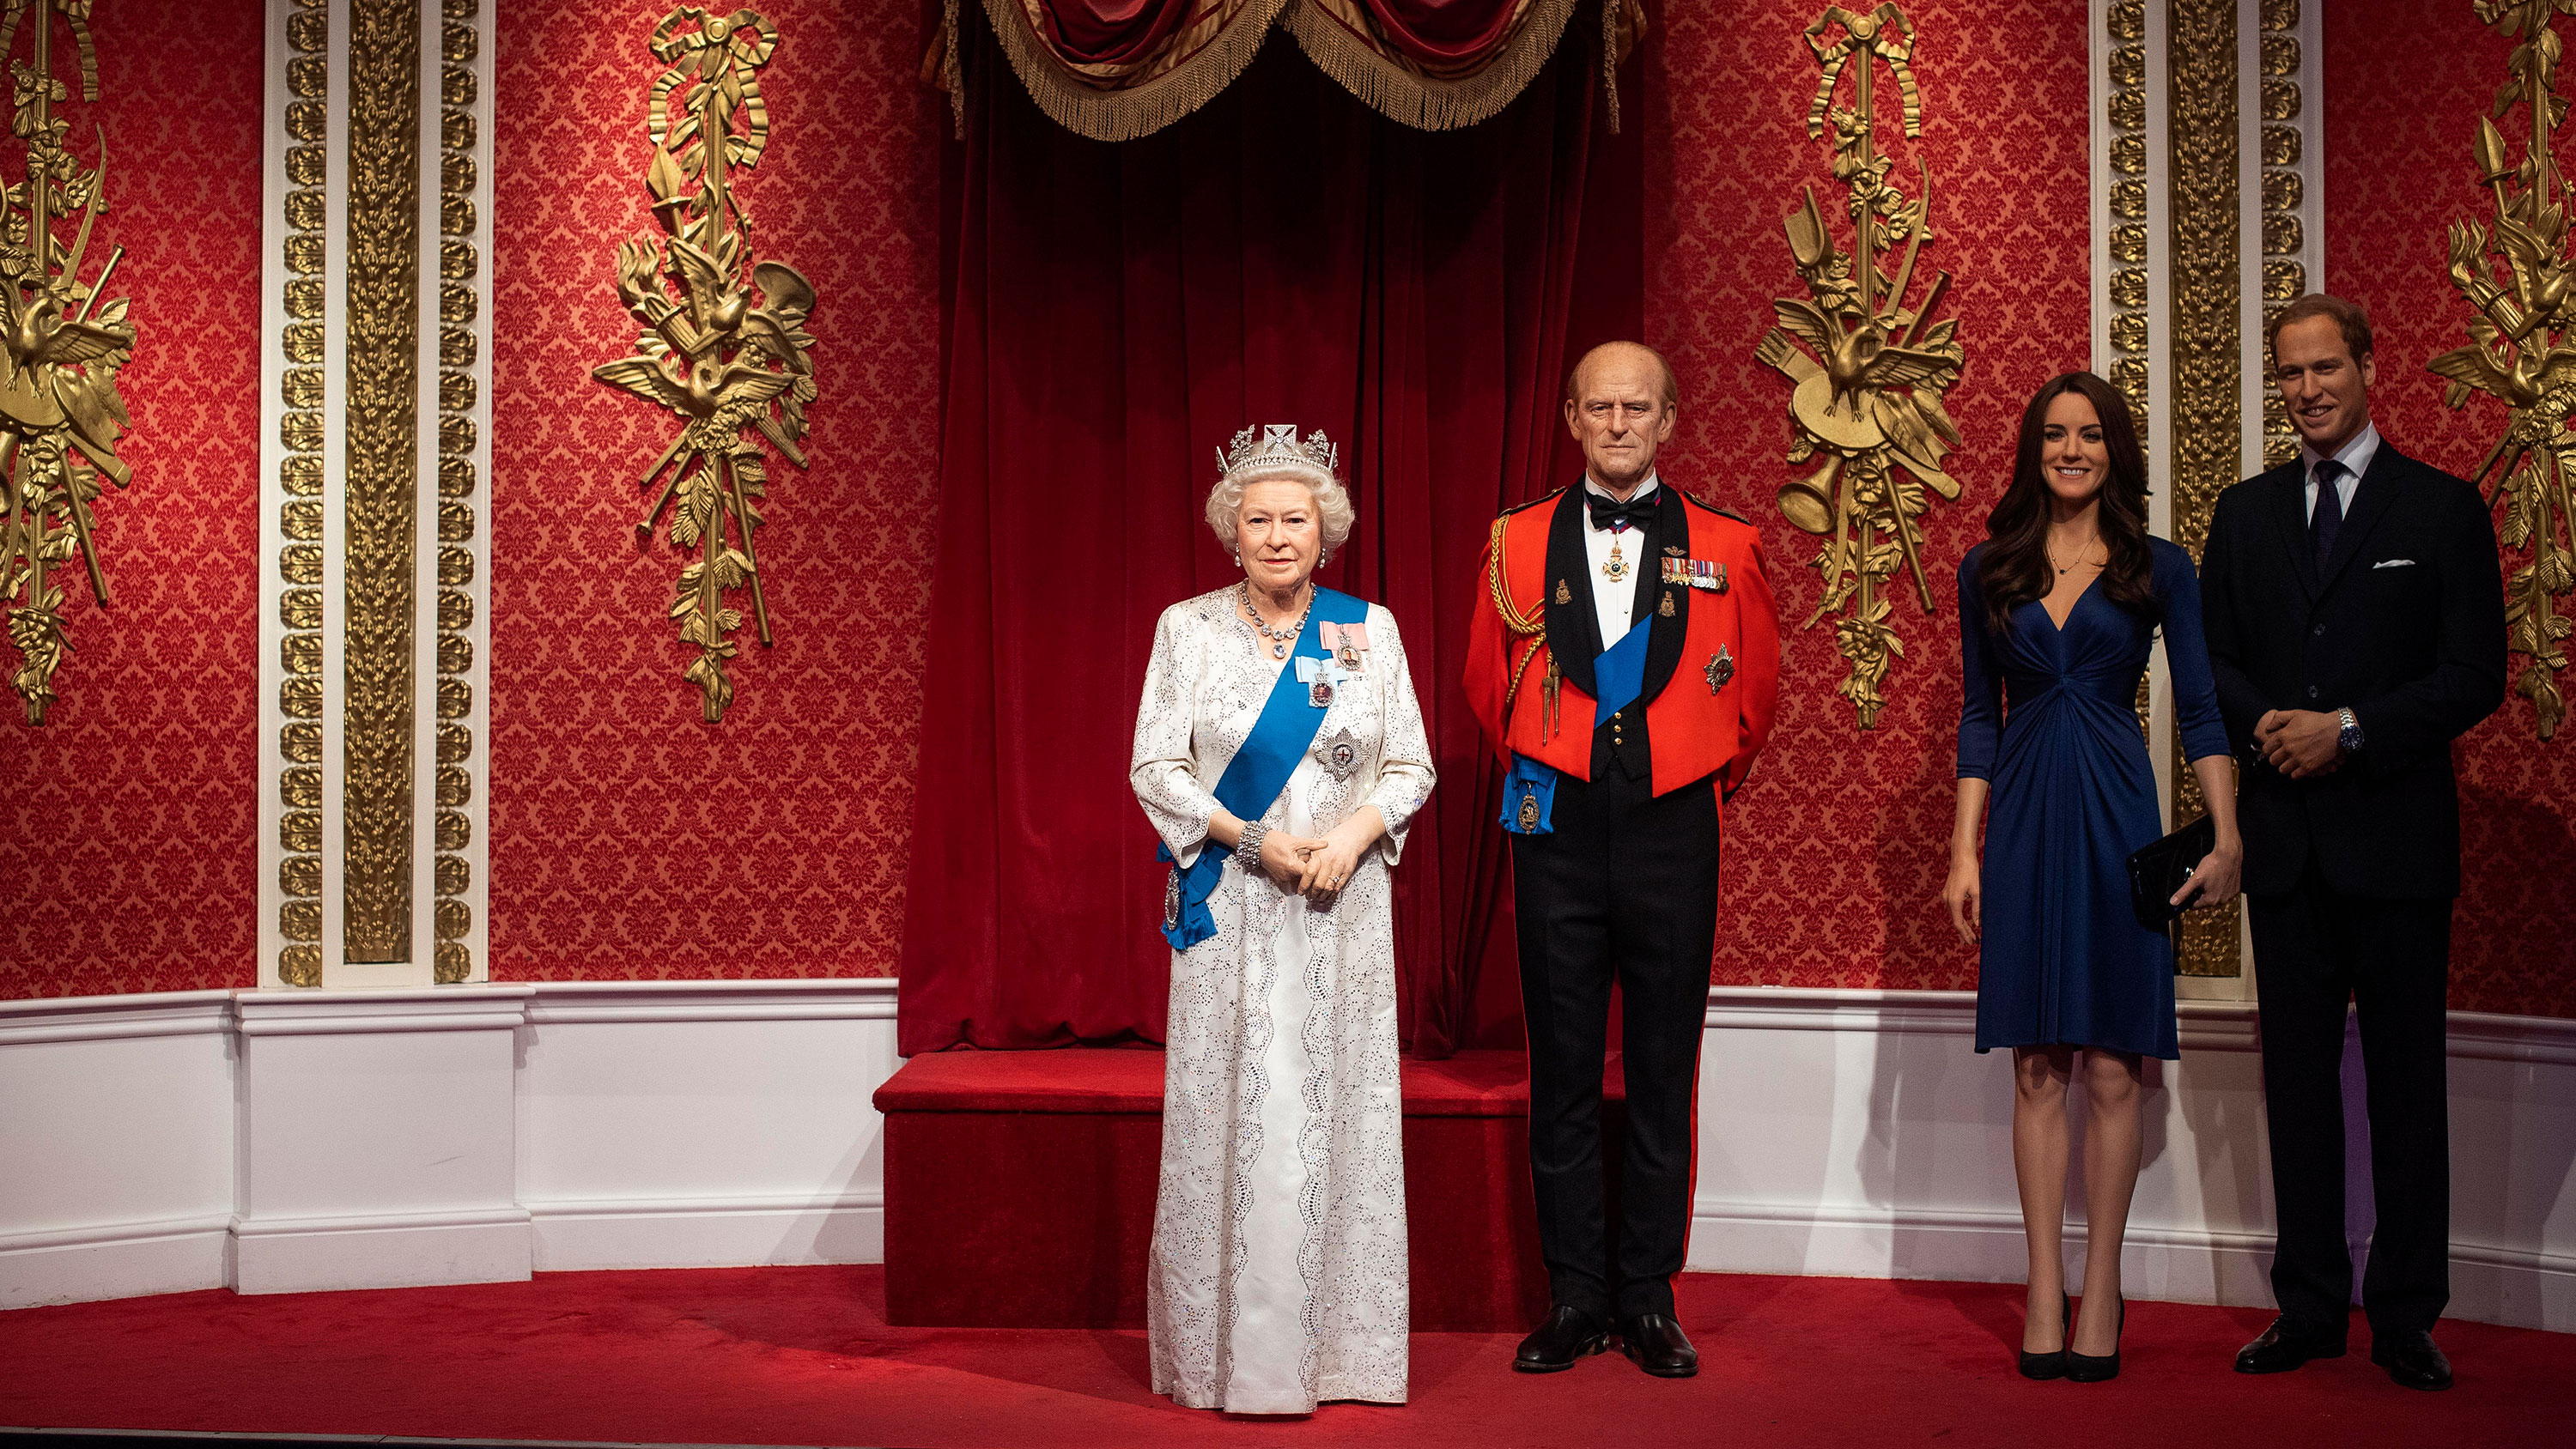 london's attractions for tourists - Madame Tussauds